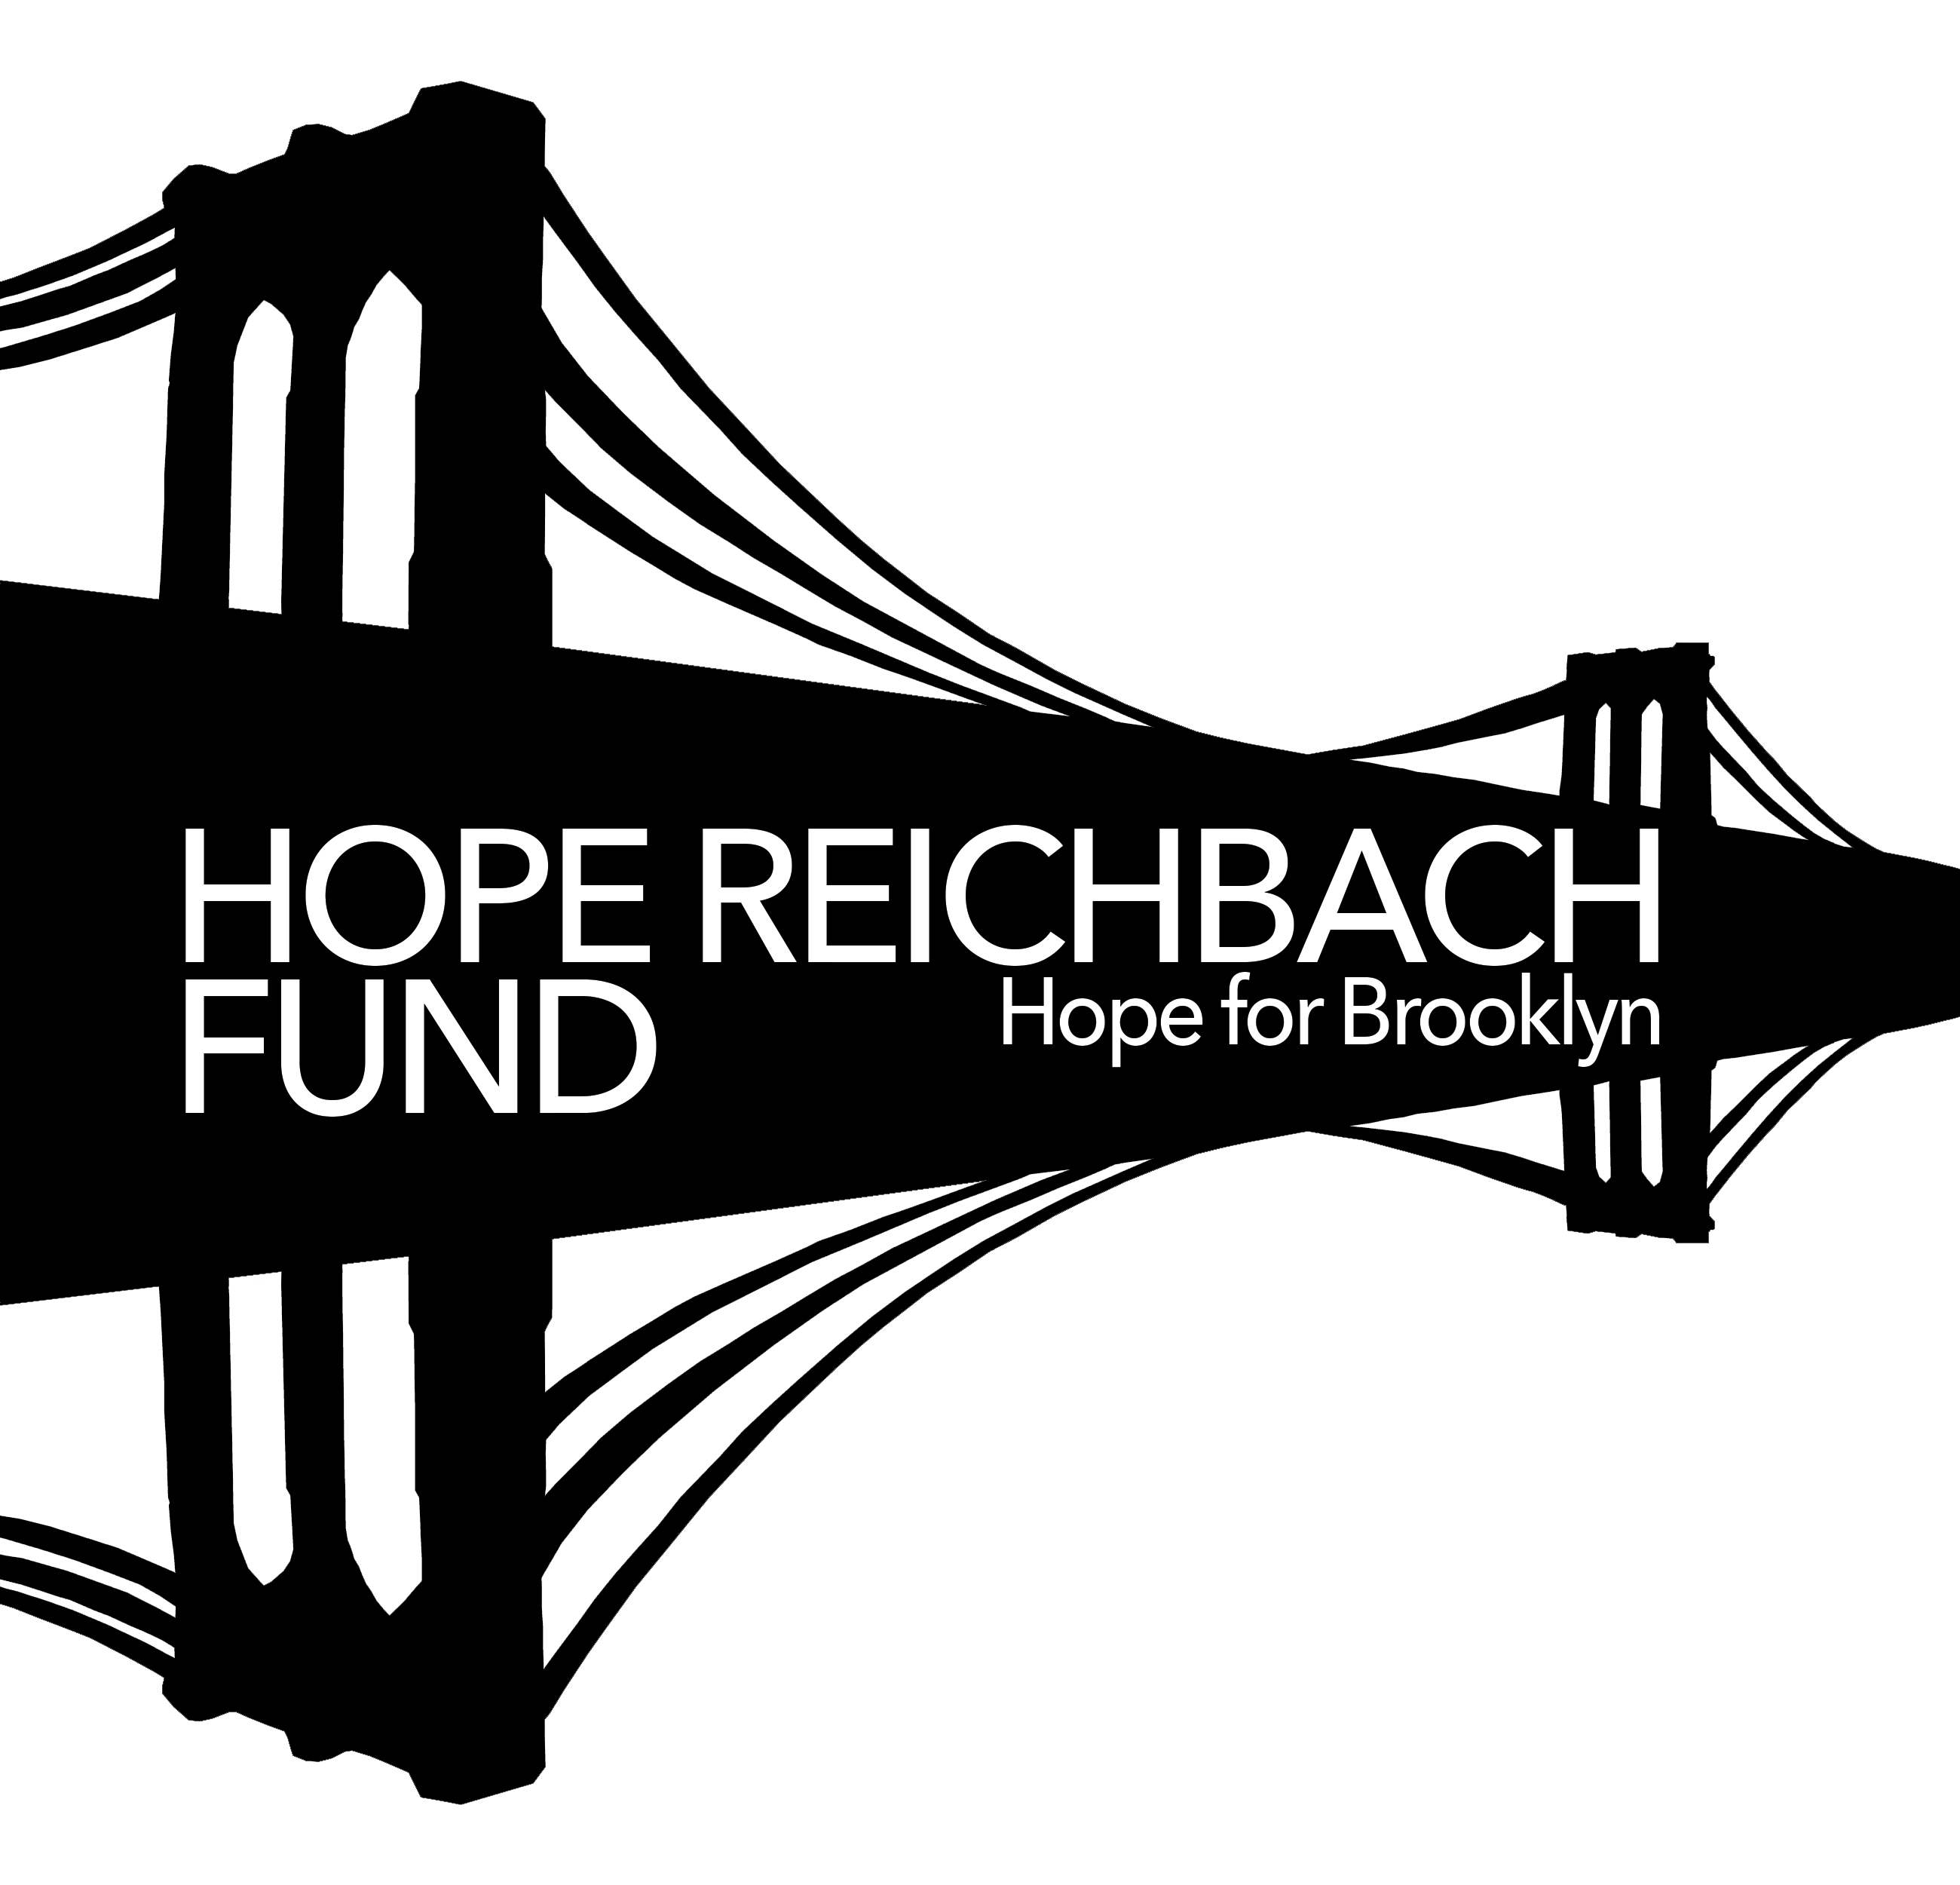 HOPE REICHBACH FUND